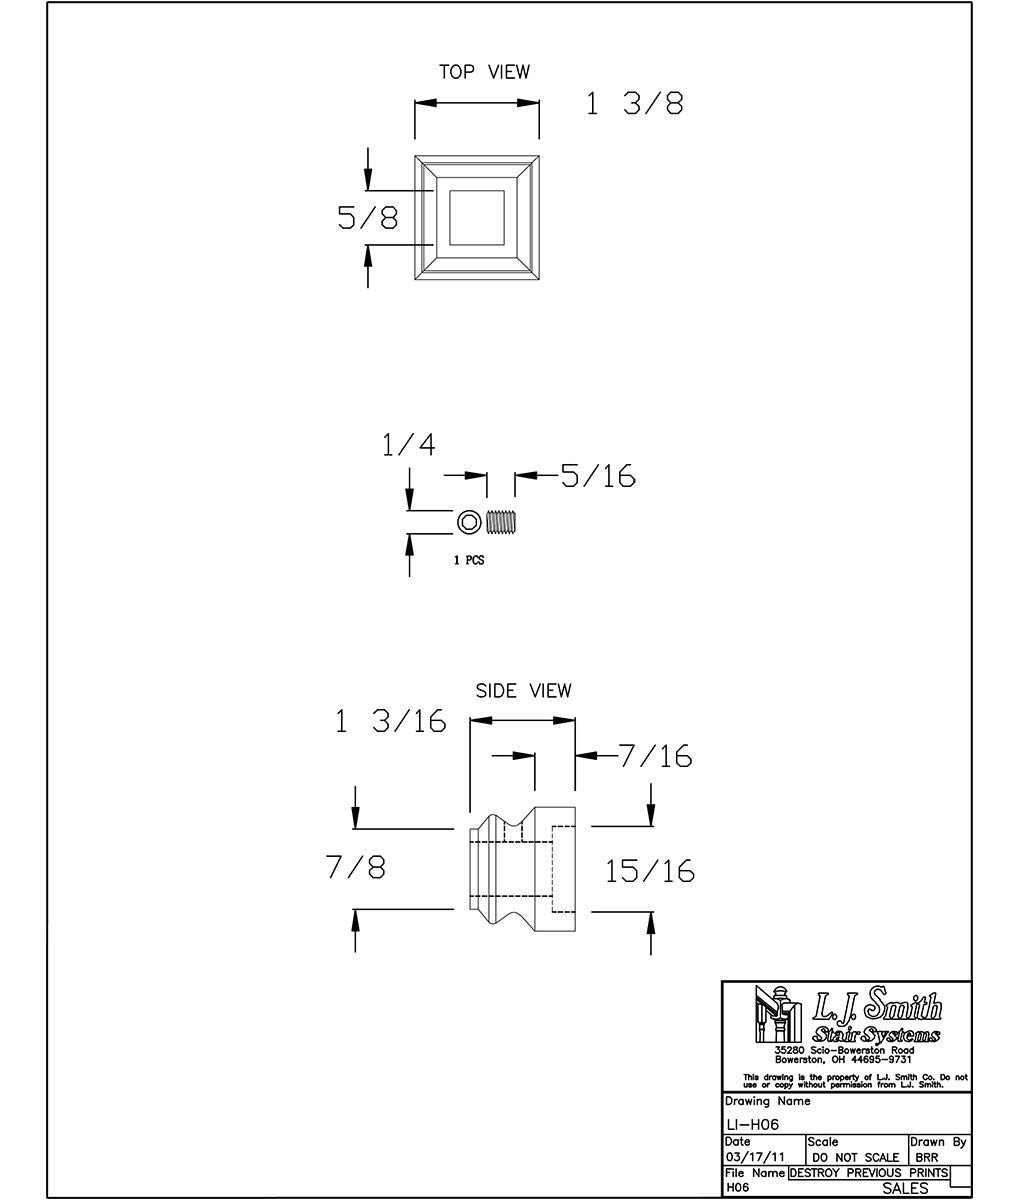 LI-H06-ABZ: Iron Level Shoe for 9/16'' Solid Square Iron Balusters (Antique Bronze)